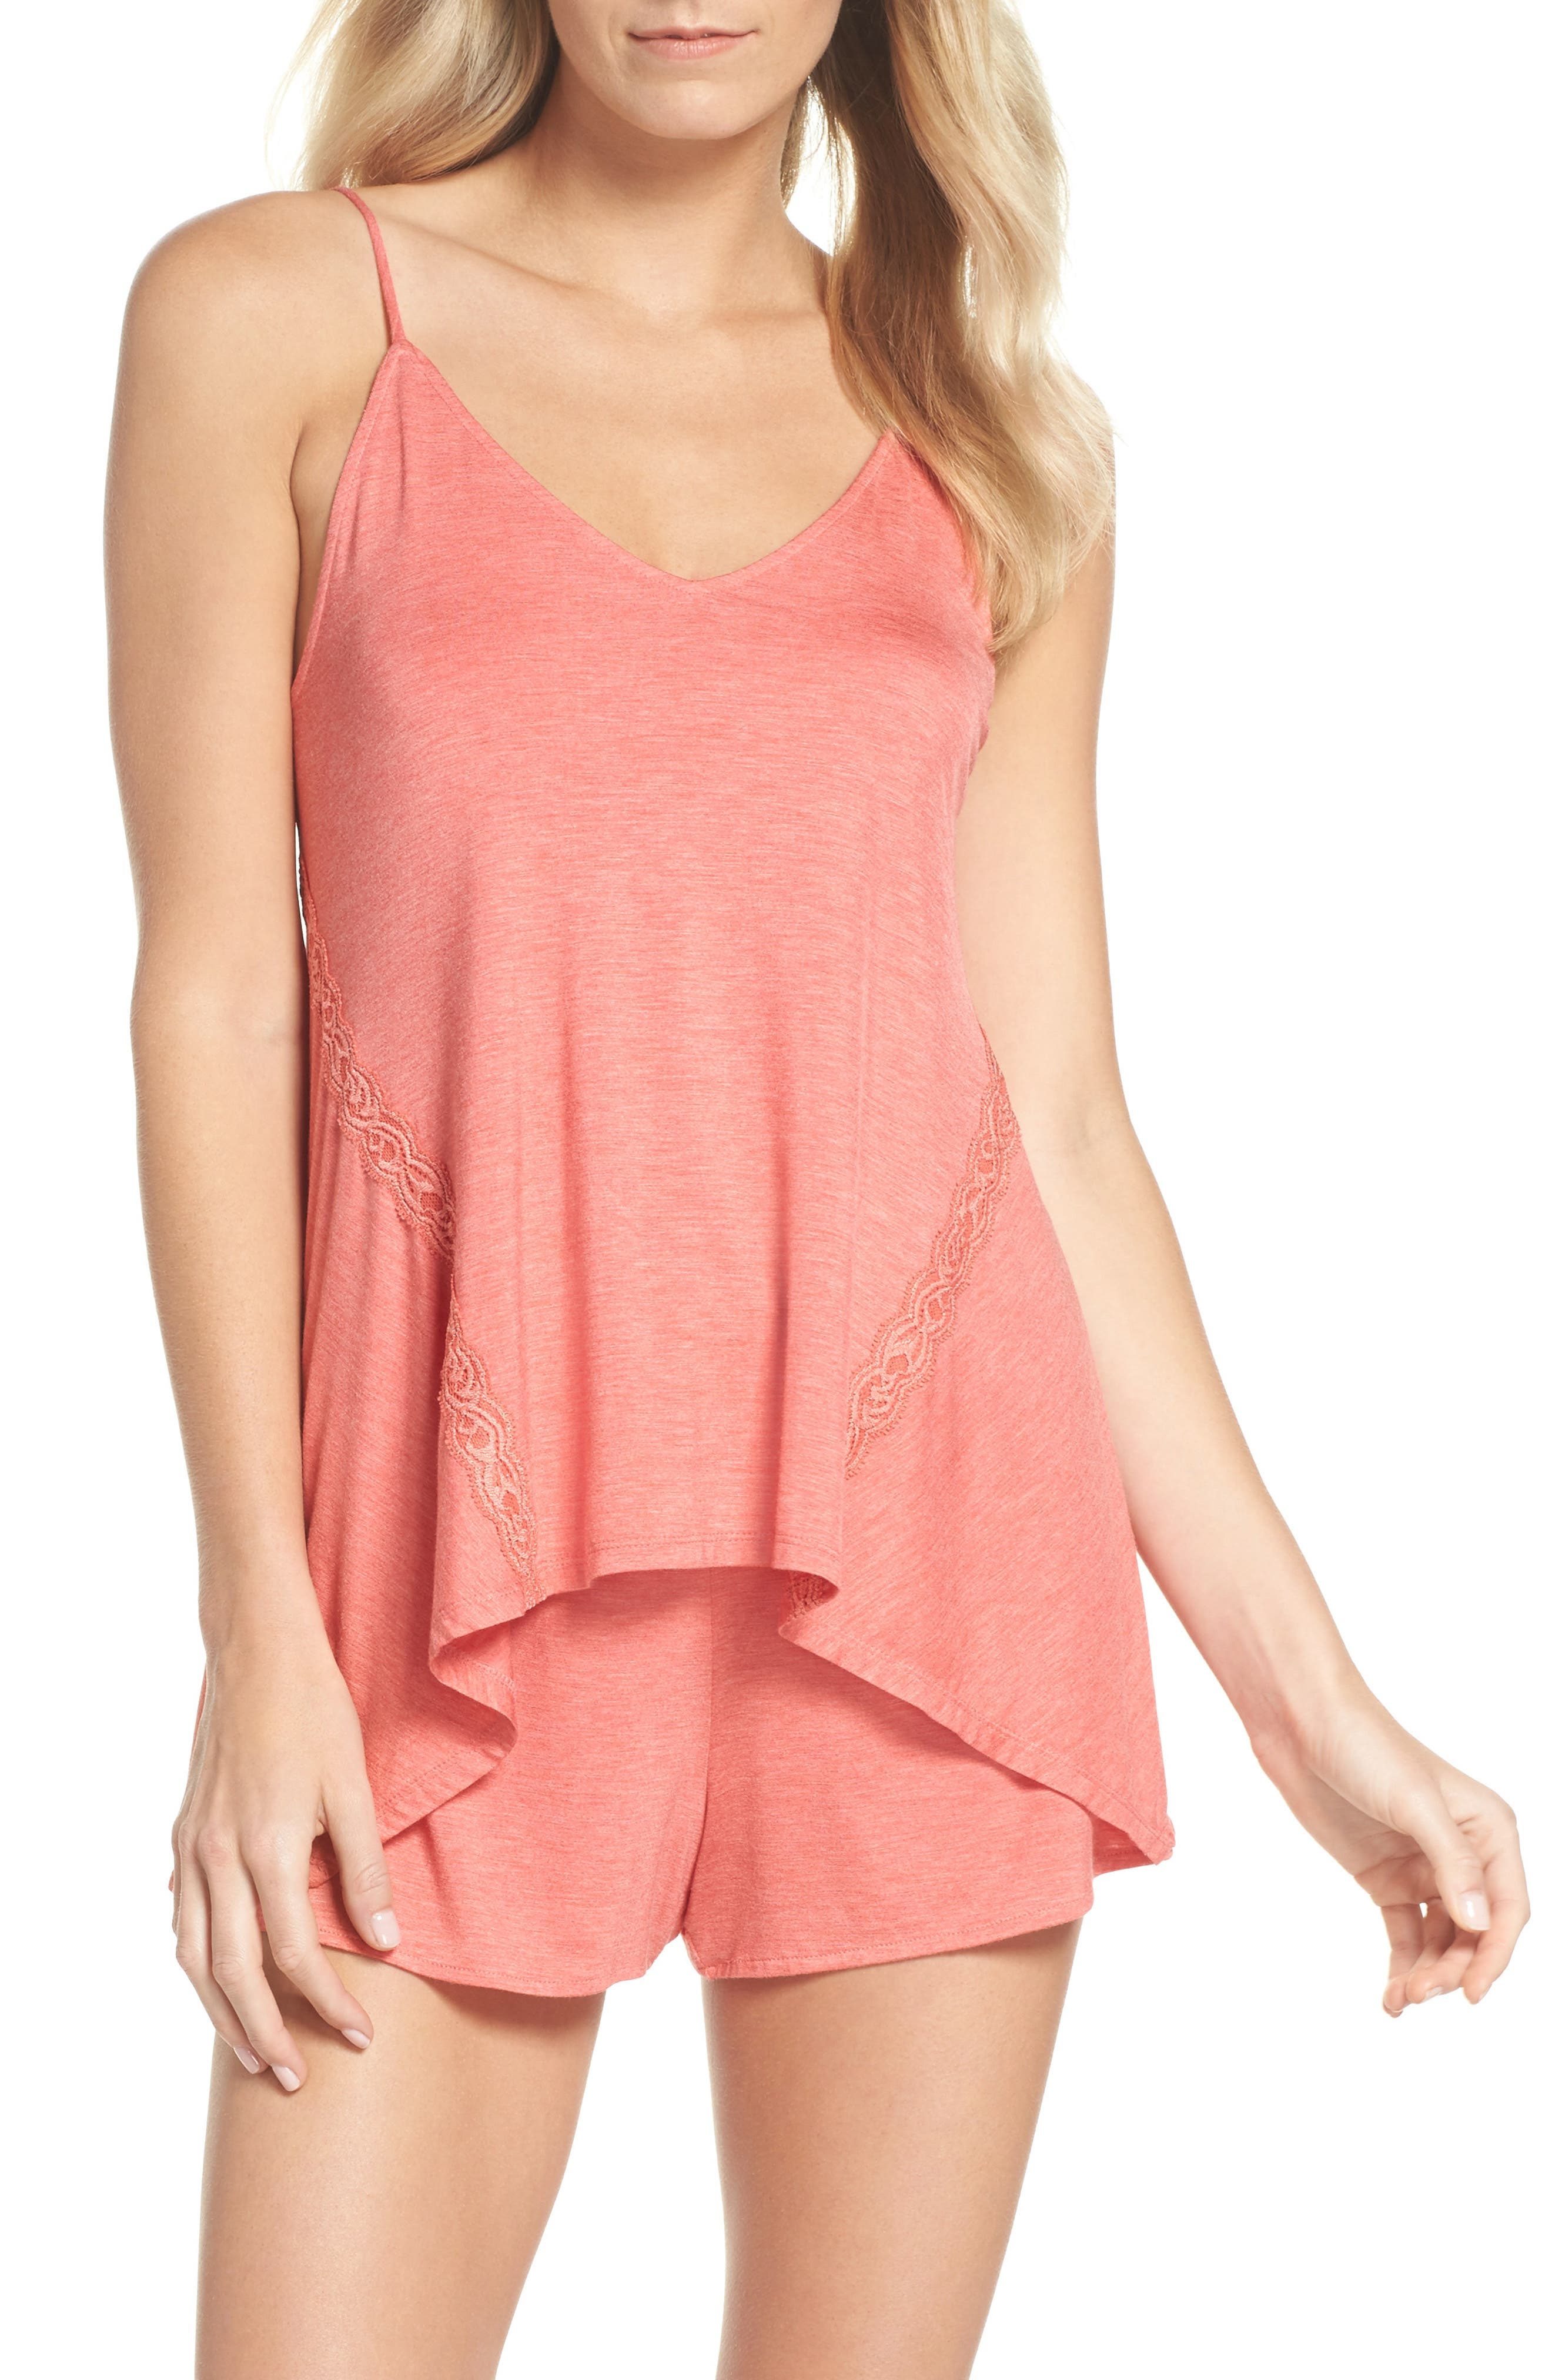 Feathers Essential Camisole,                             Main thumbnail 1, color,                             Coral